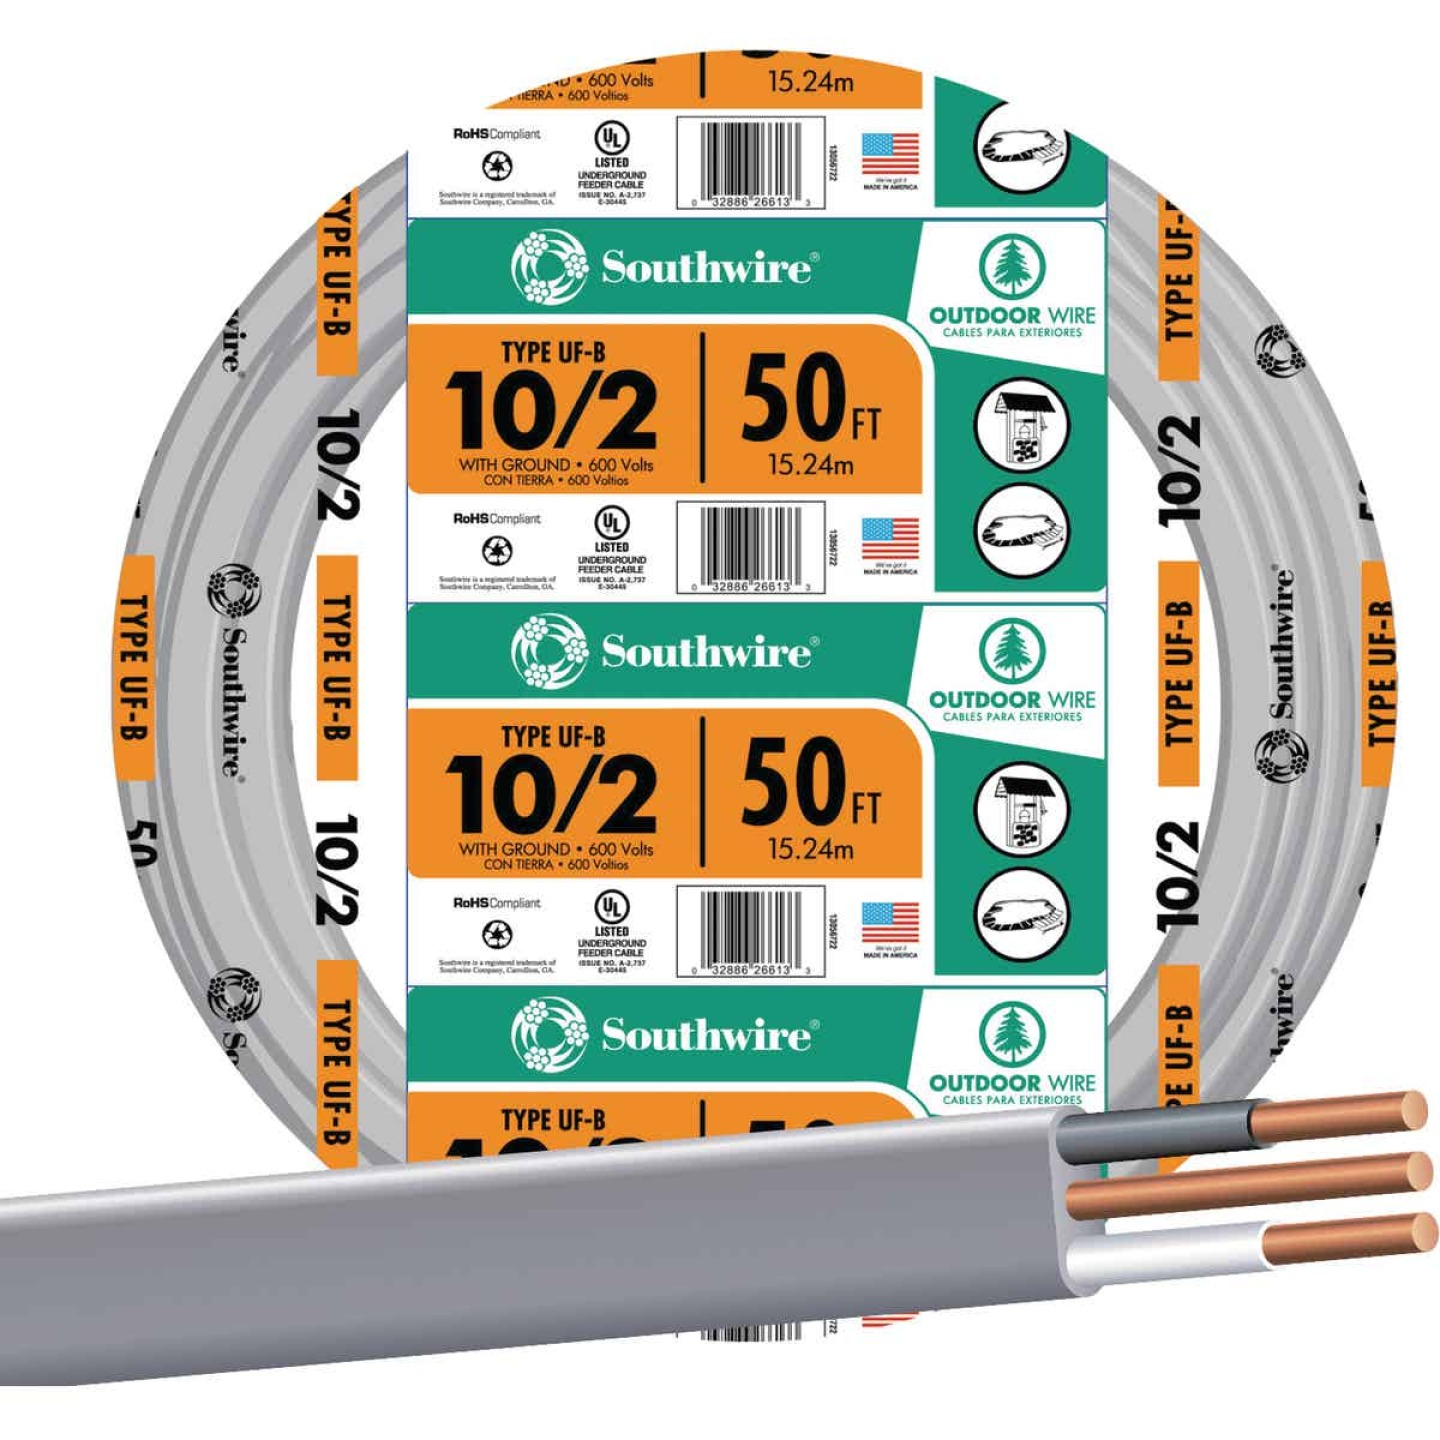 Southwire 50 Ft. 10 AWG 2-Conductor UFW/G Wire Image 1